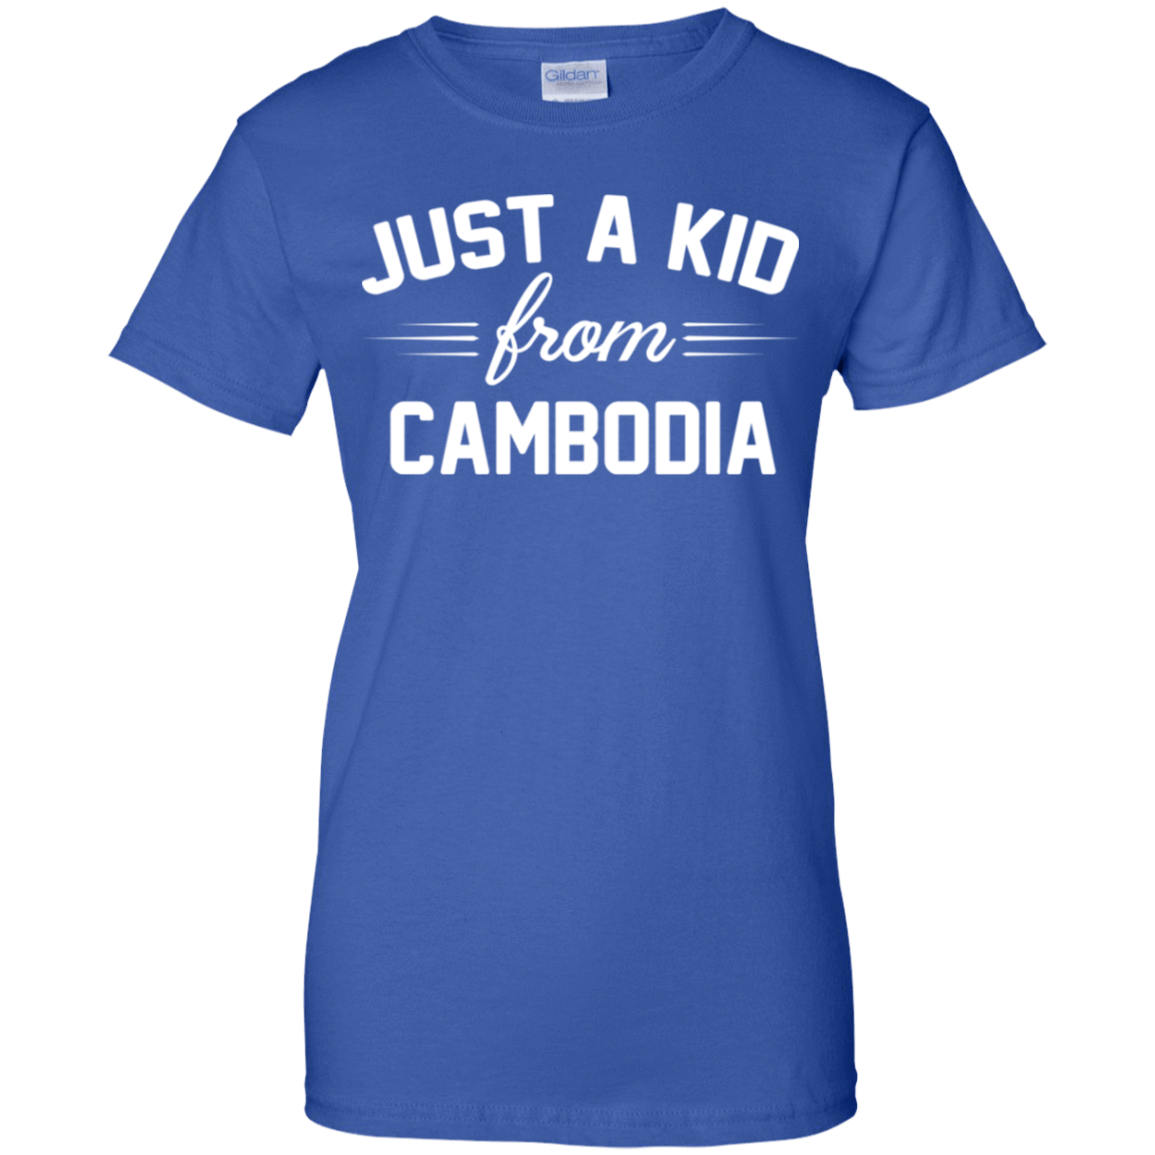 Just a Kid Store | Cambodia T-Shirts, Hoodie, Tank 939-9264-72092775-44807 - Tee Ript